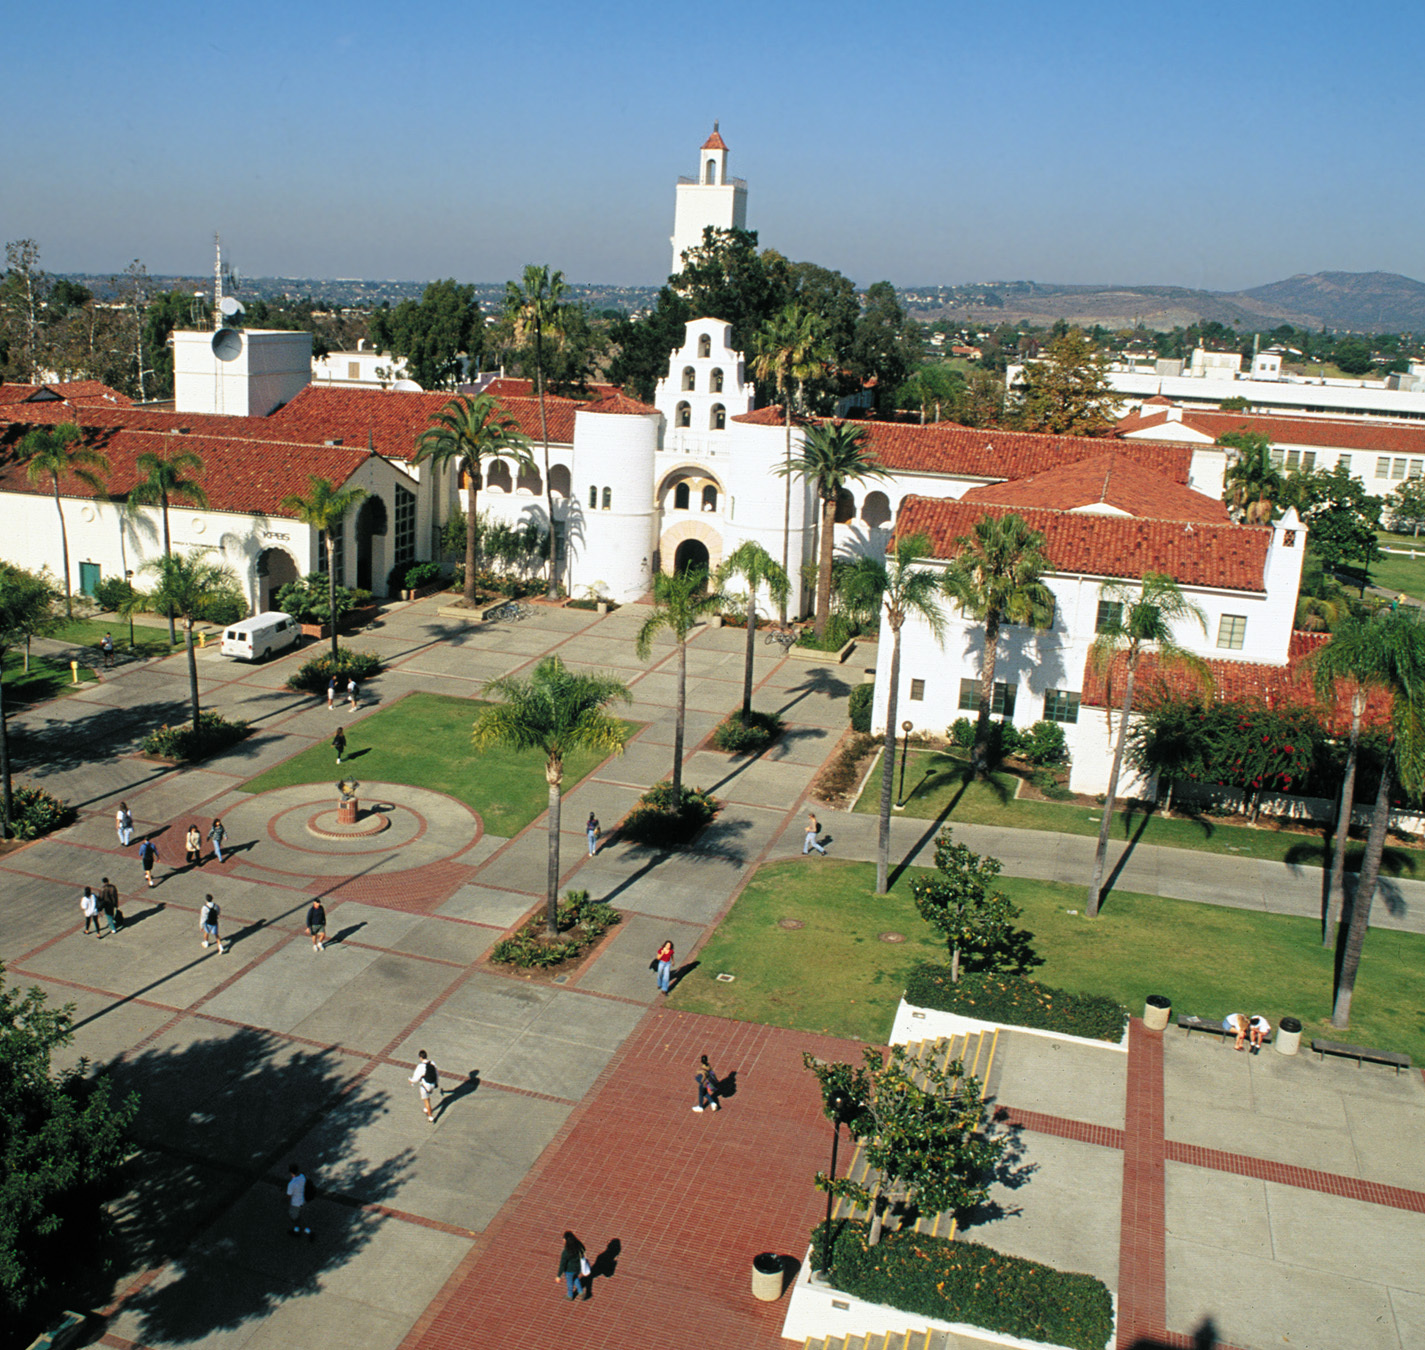 Taste The Blog: What Good Colleges Are There Near San Diego?